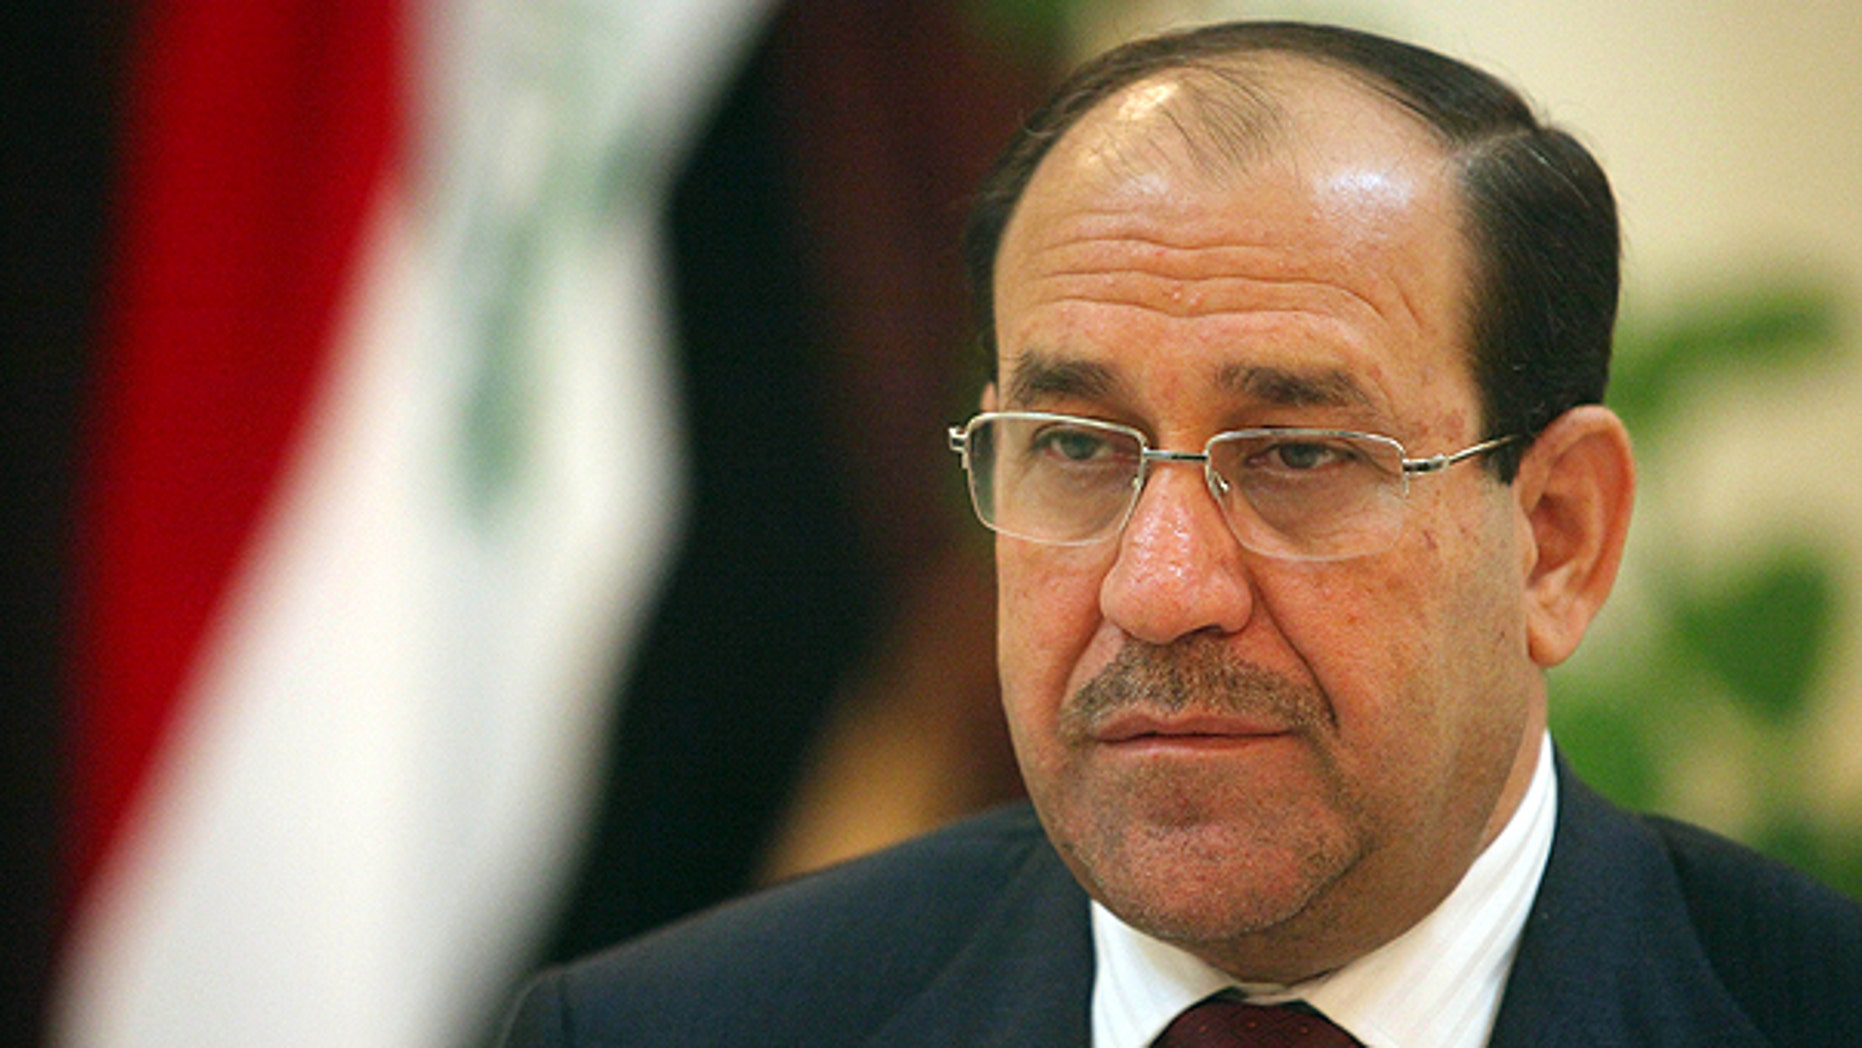 In this Feb. 28, 2010 file photo, Iraq's Prime Minister Nouri al-Maliki is shown during an interview with The Associated Press in Baghdad, Iraq. (AP)